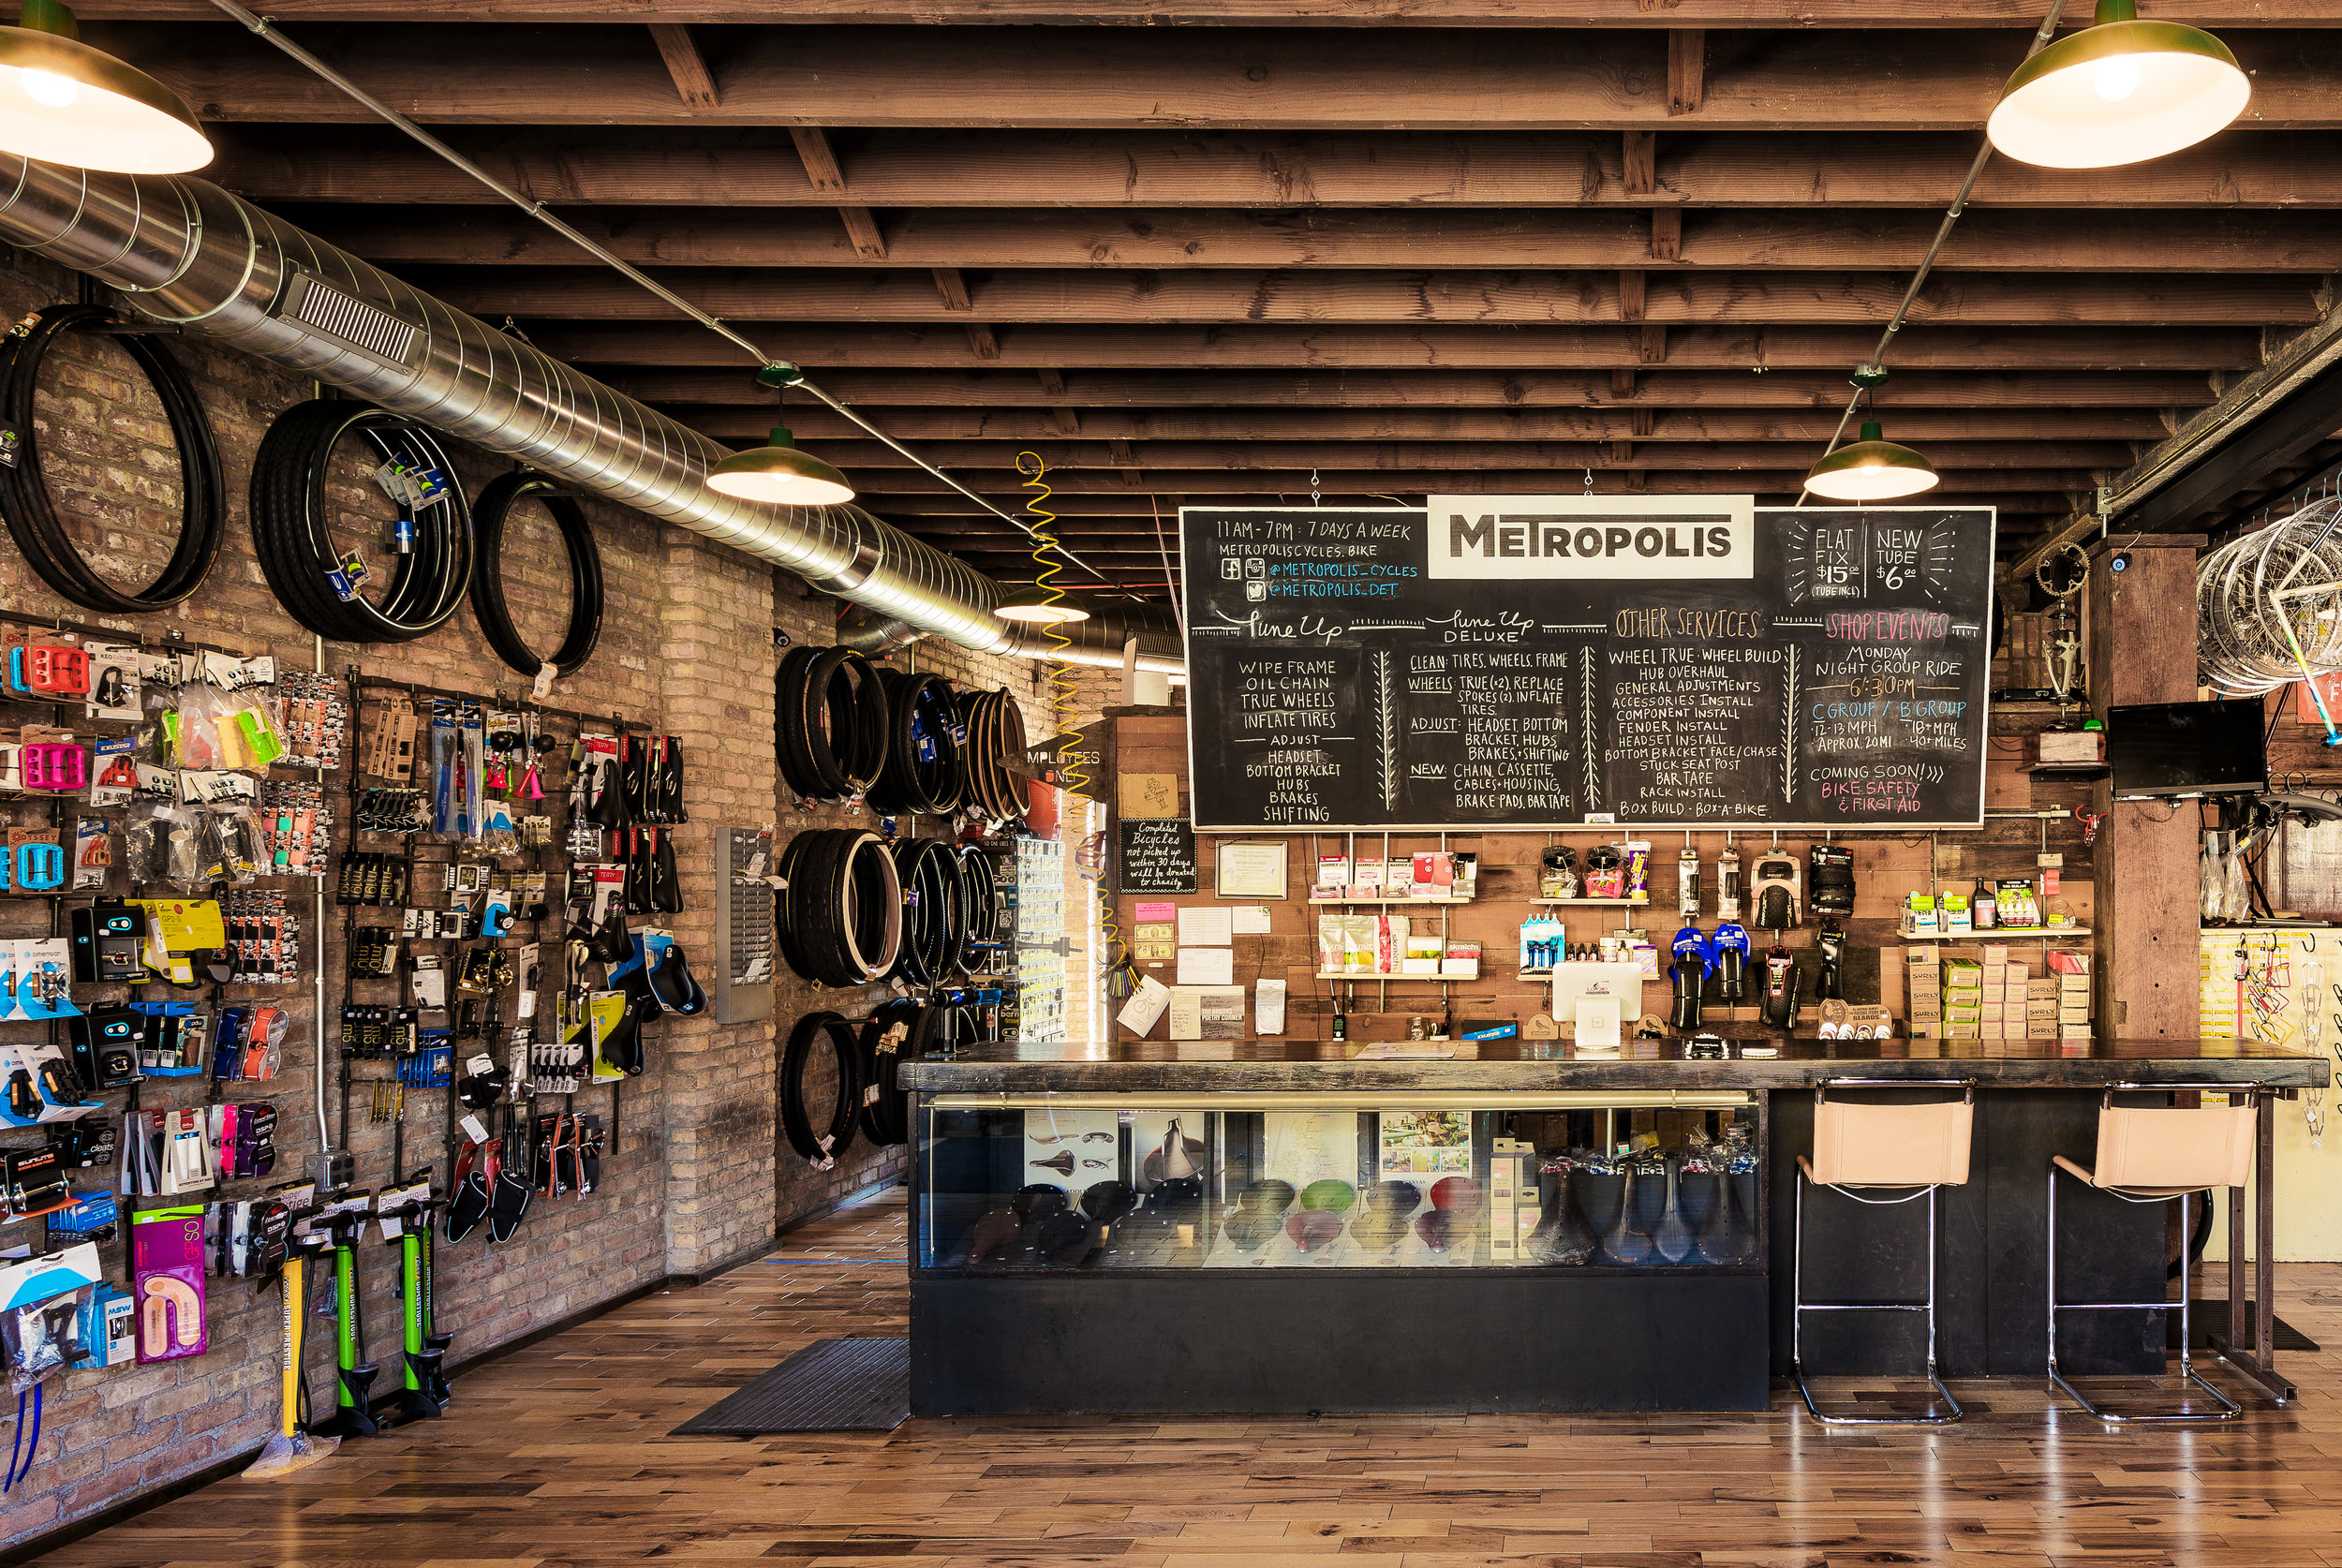 Metropolis Cycles - Metropolis Cycles is a bicycle shop committed to providing the best possible customer service to help people find the right bicycle / accessory / service to match their cycling style.